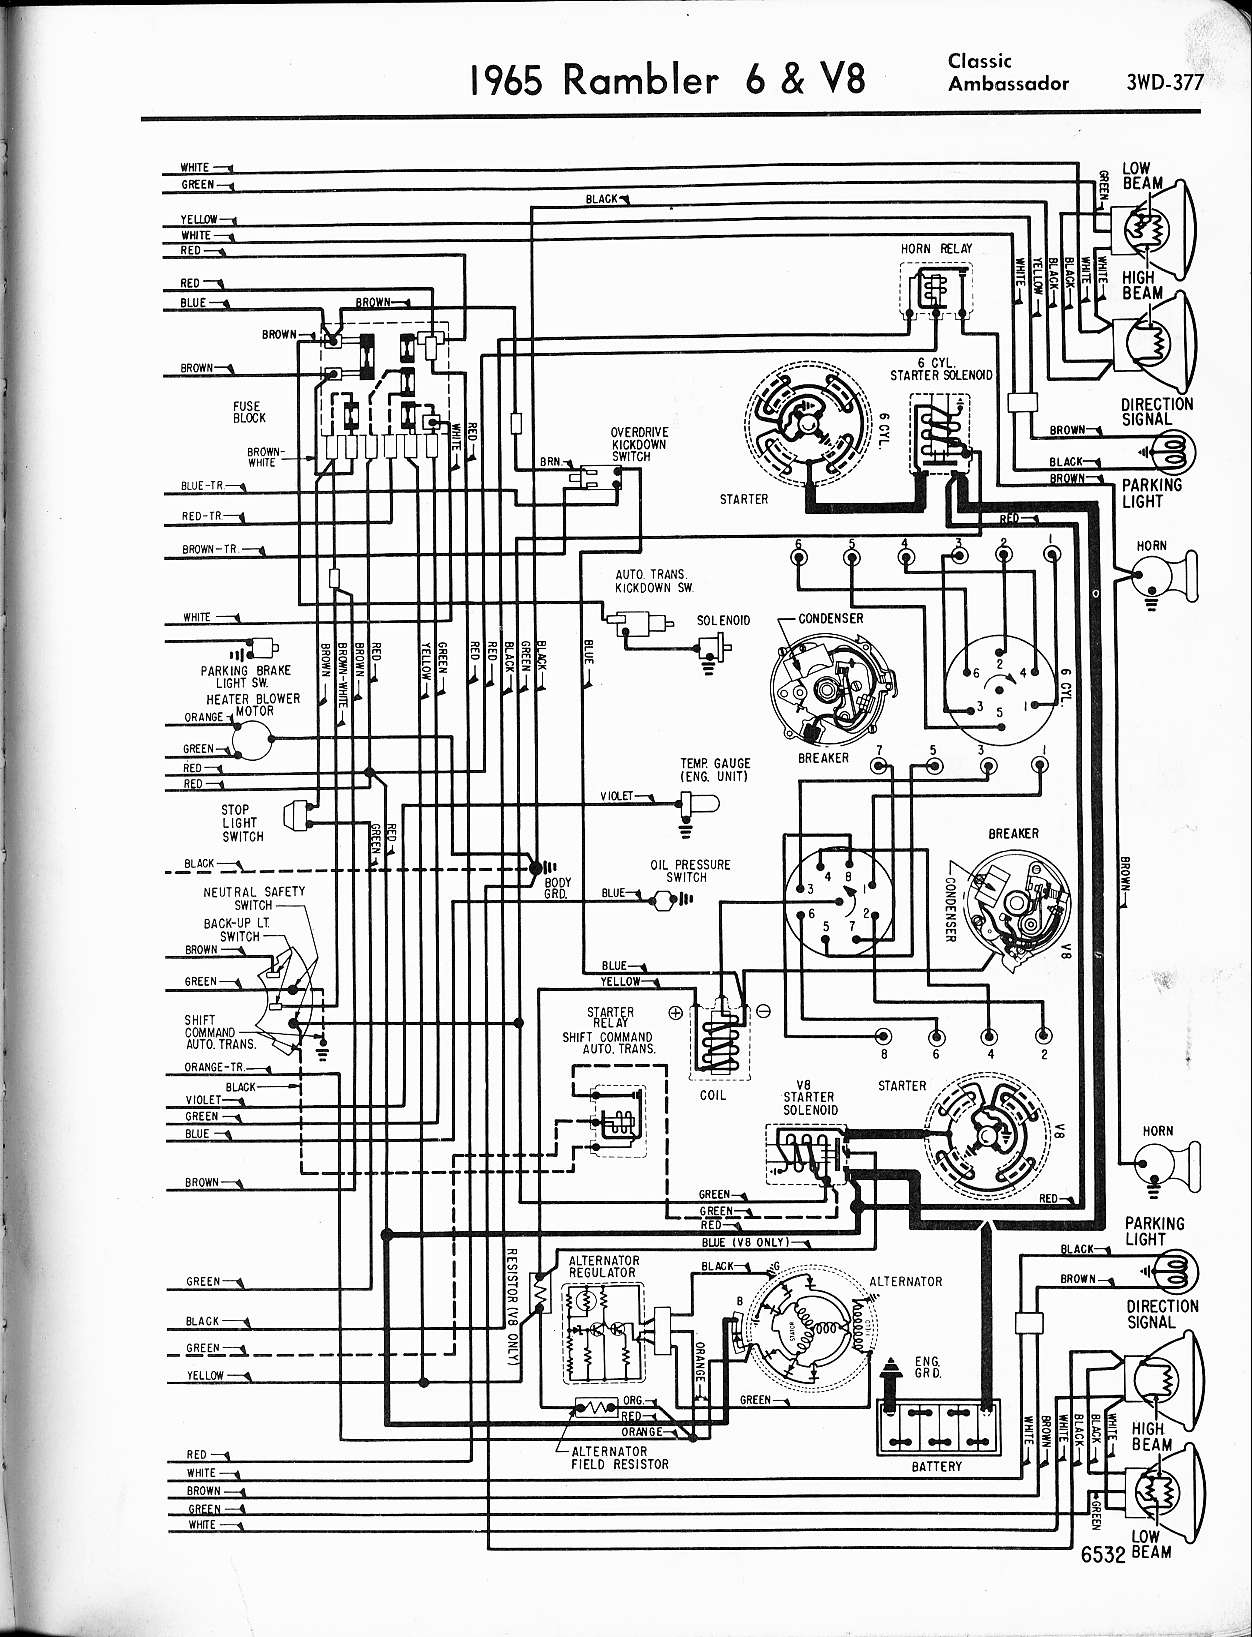 Amx Wiring Diagram Library Msd For 77 Hornet The Amc Forum Harness 1965 Rambler Marlin Opinions About U2022 67 Rebel 1968